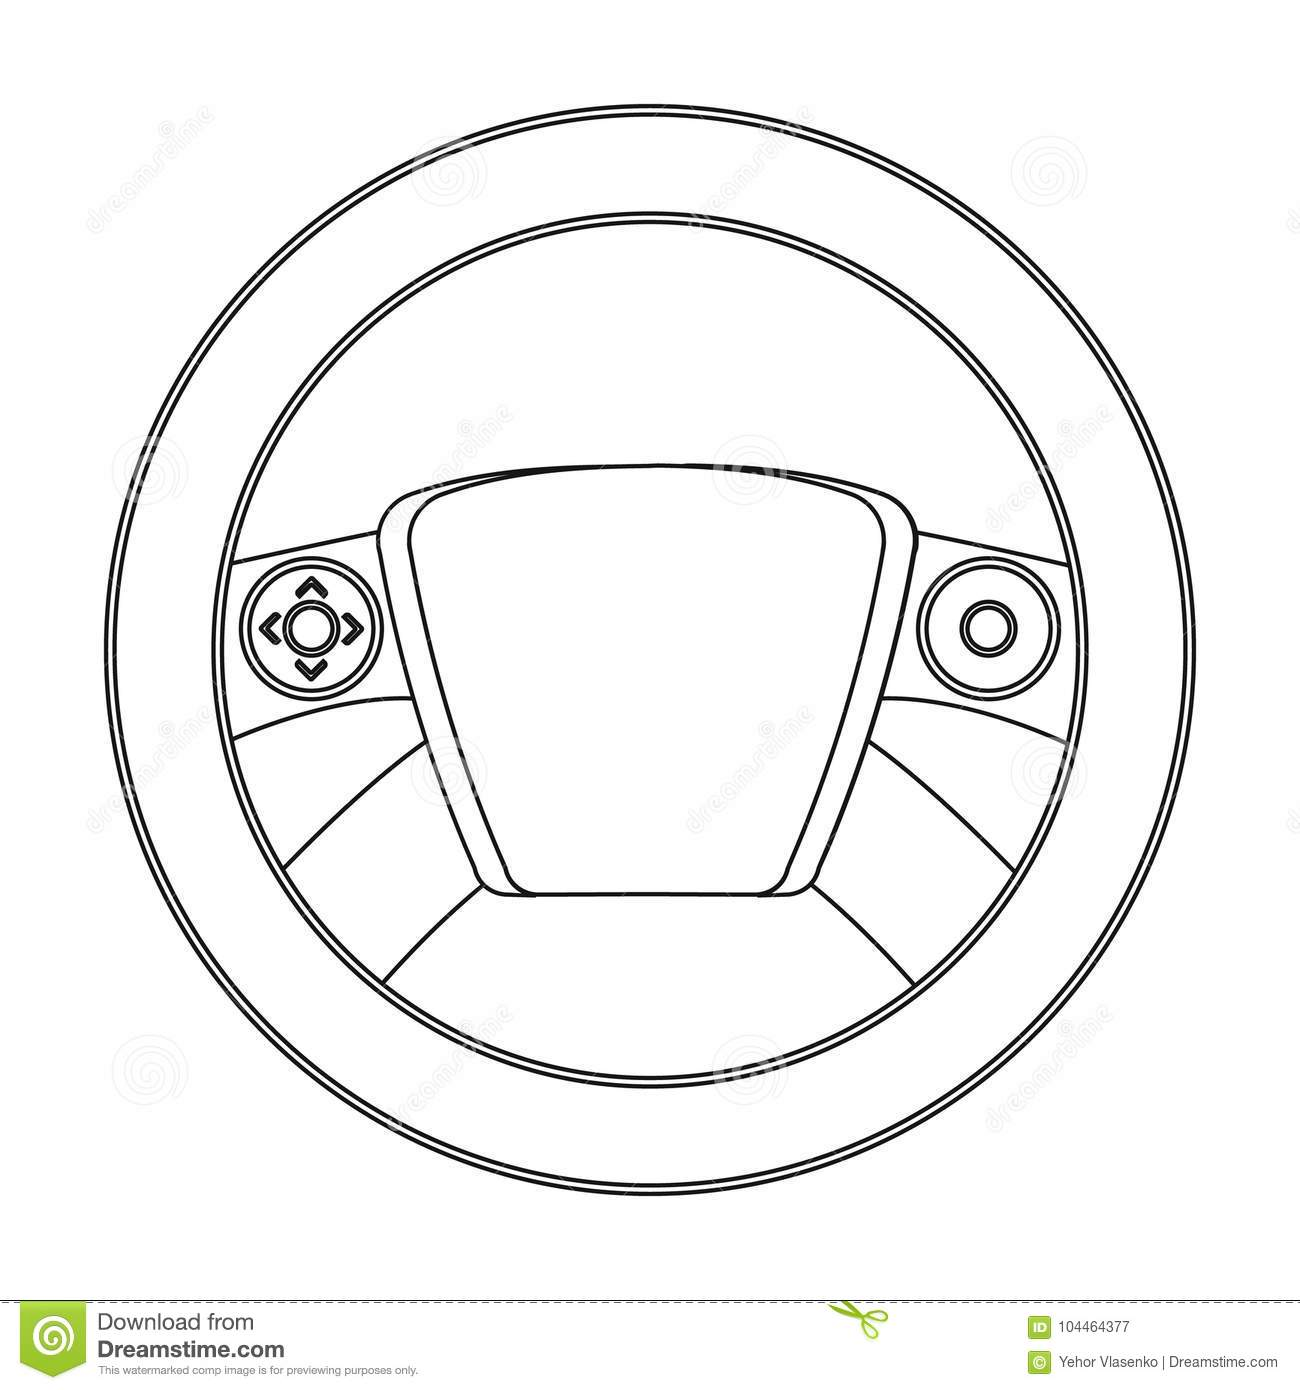 steering wheel single icon in outline style for design car